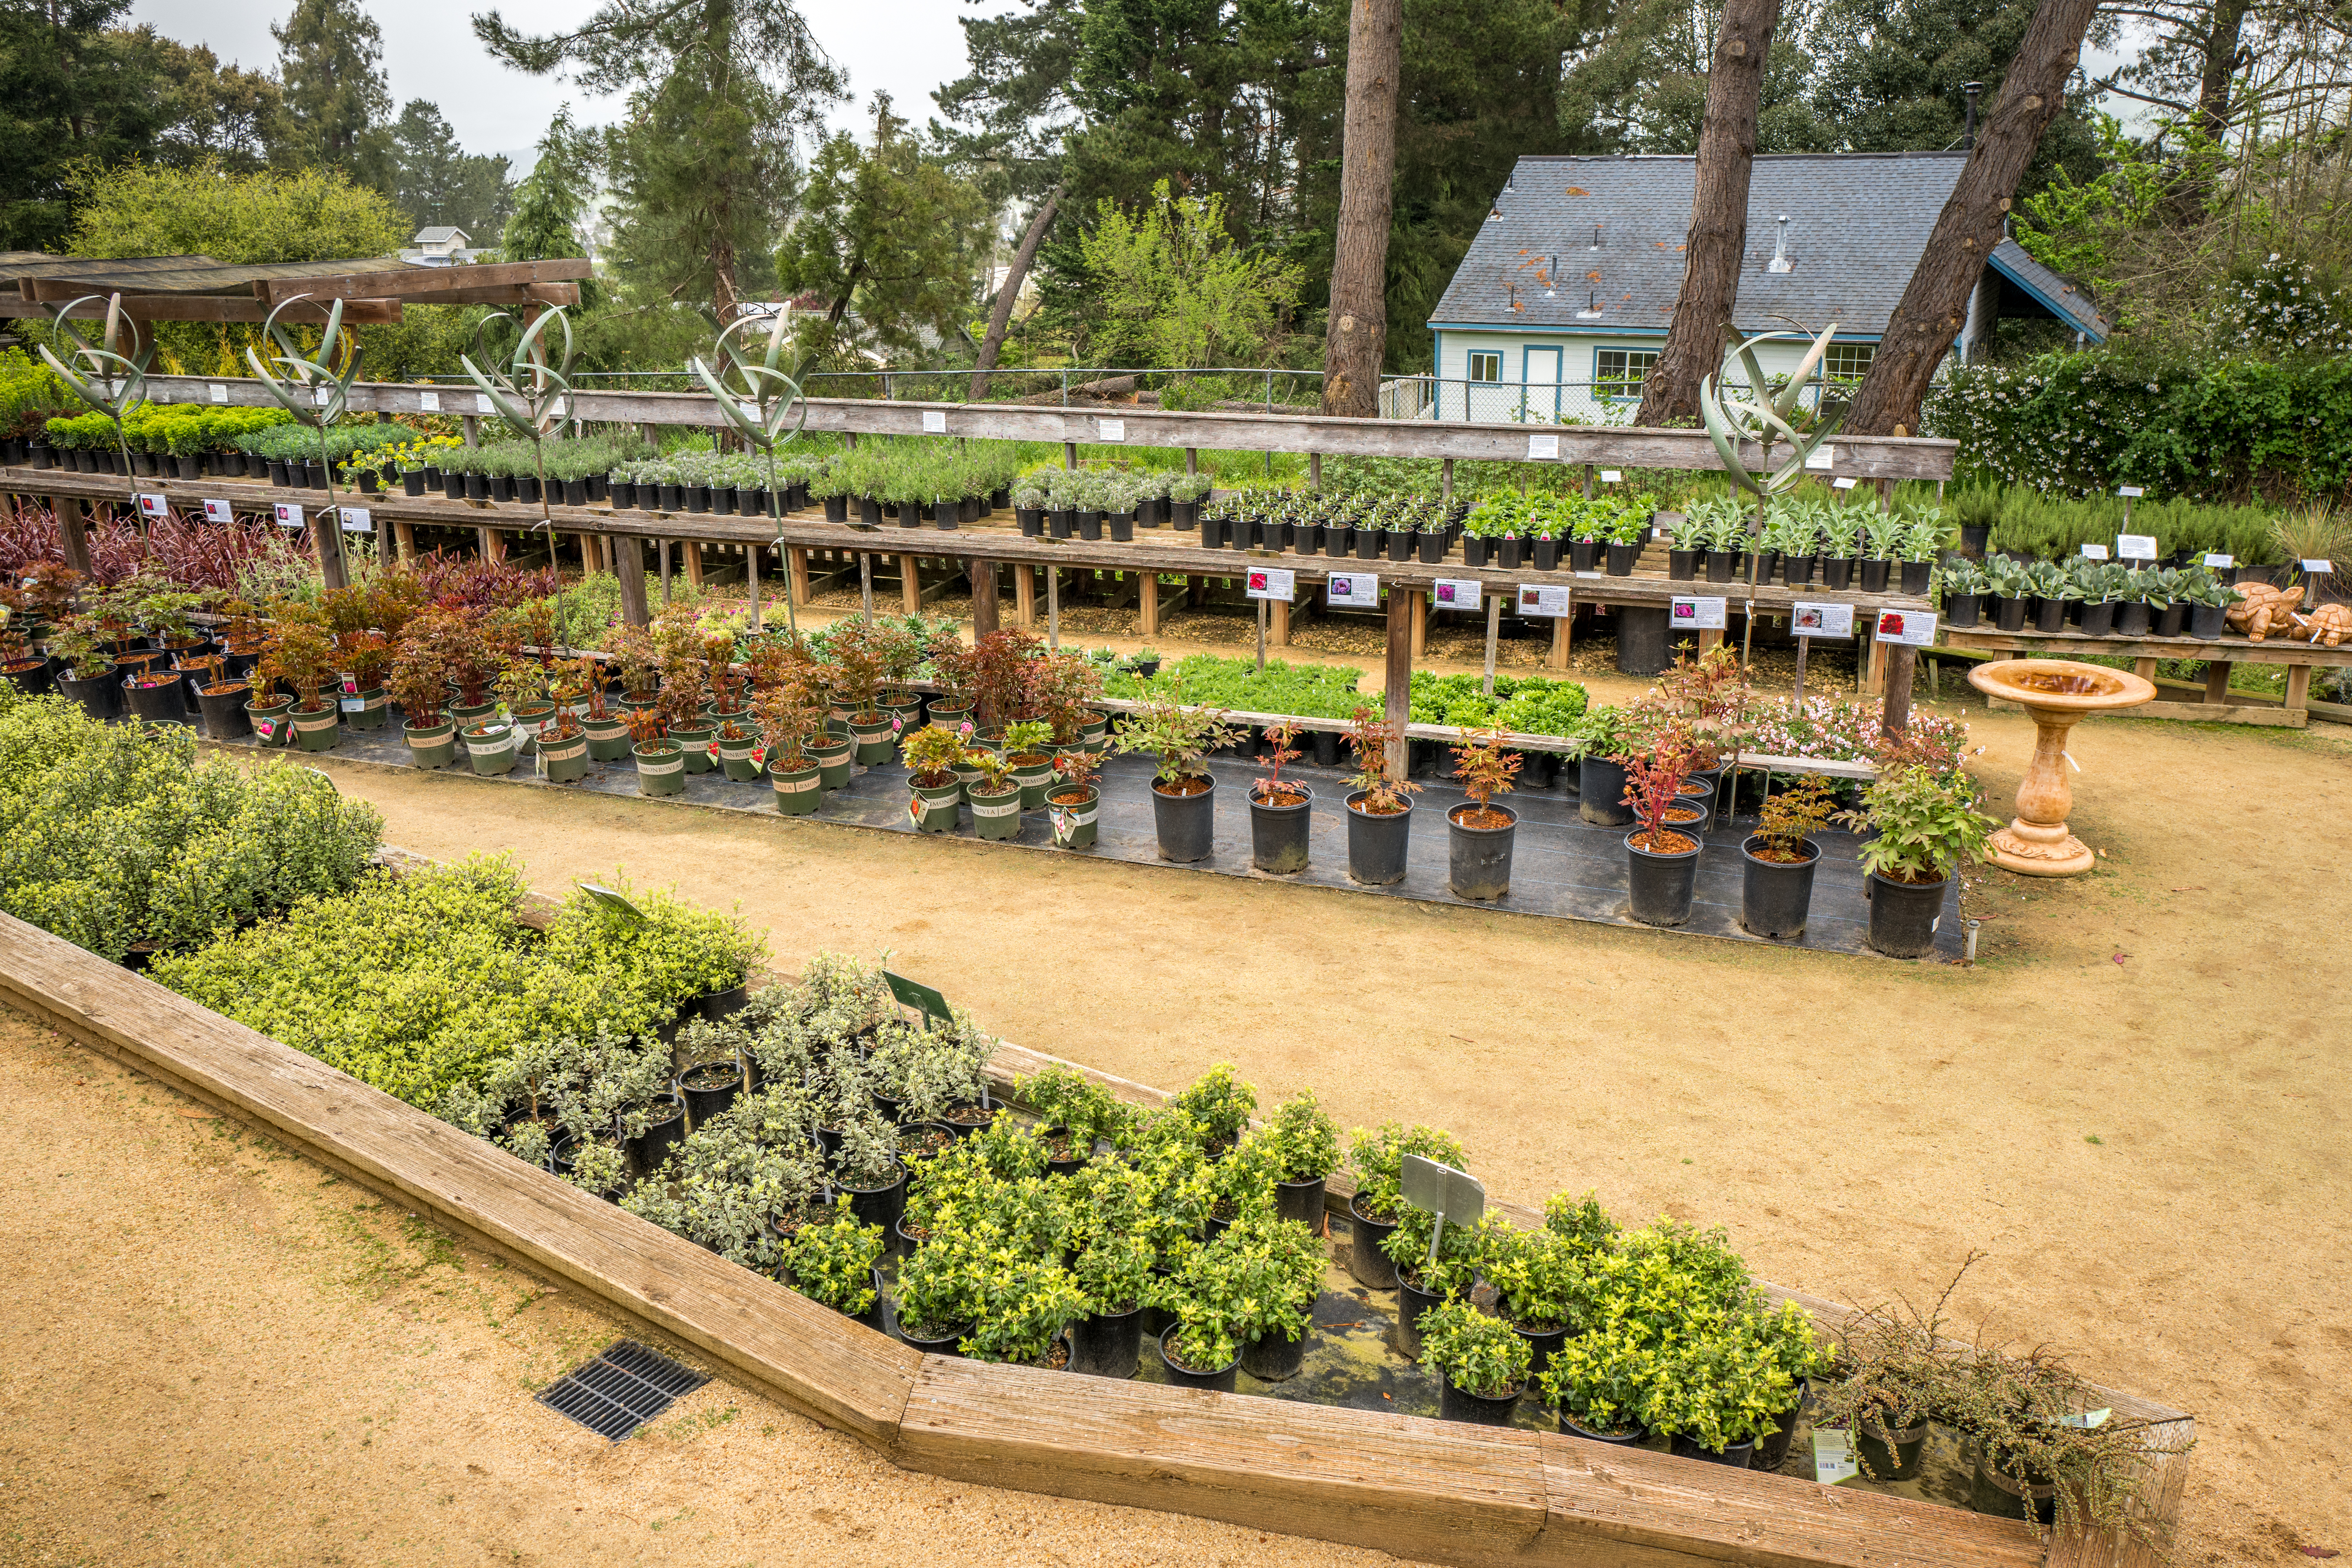 It Was Beginning To Rain As I Arrived But Didn T Deter Me From Racing Around Every Inch Of This Incredible Nursery My First Stop The Vegetable Starts